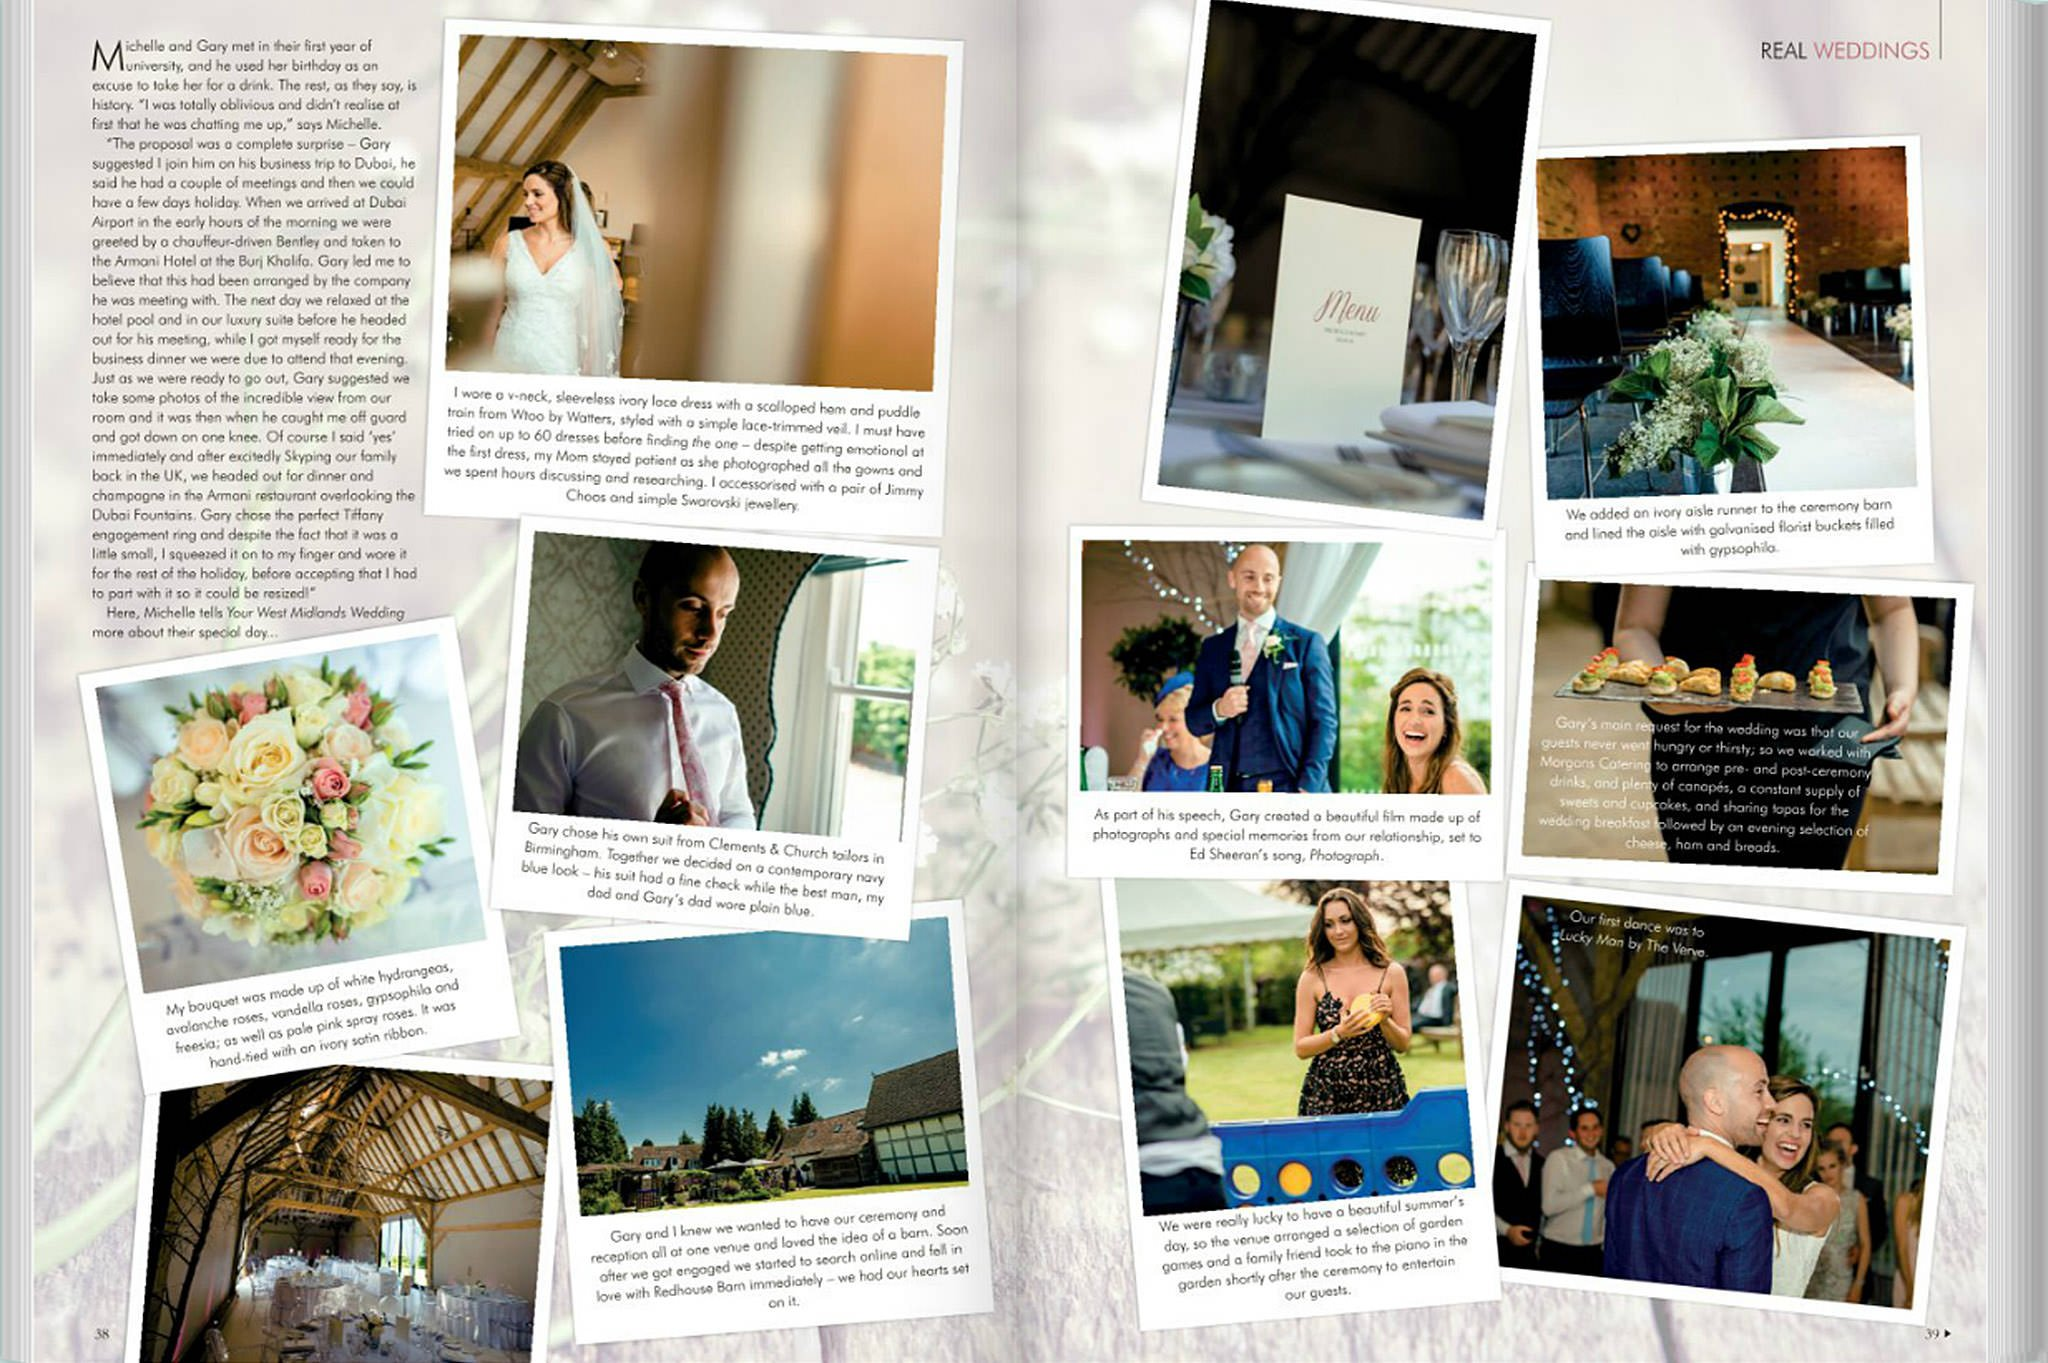 your west midlands wedding 2 - Gary & Michelle's special day featured in Your West Midlands wedding magazine